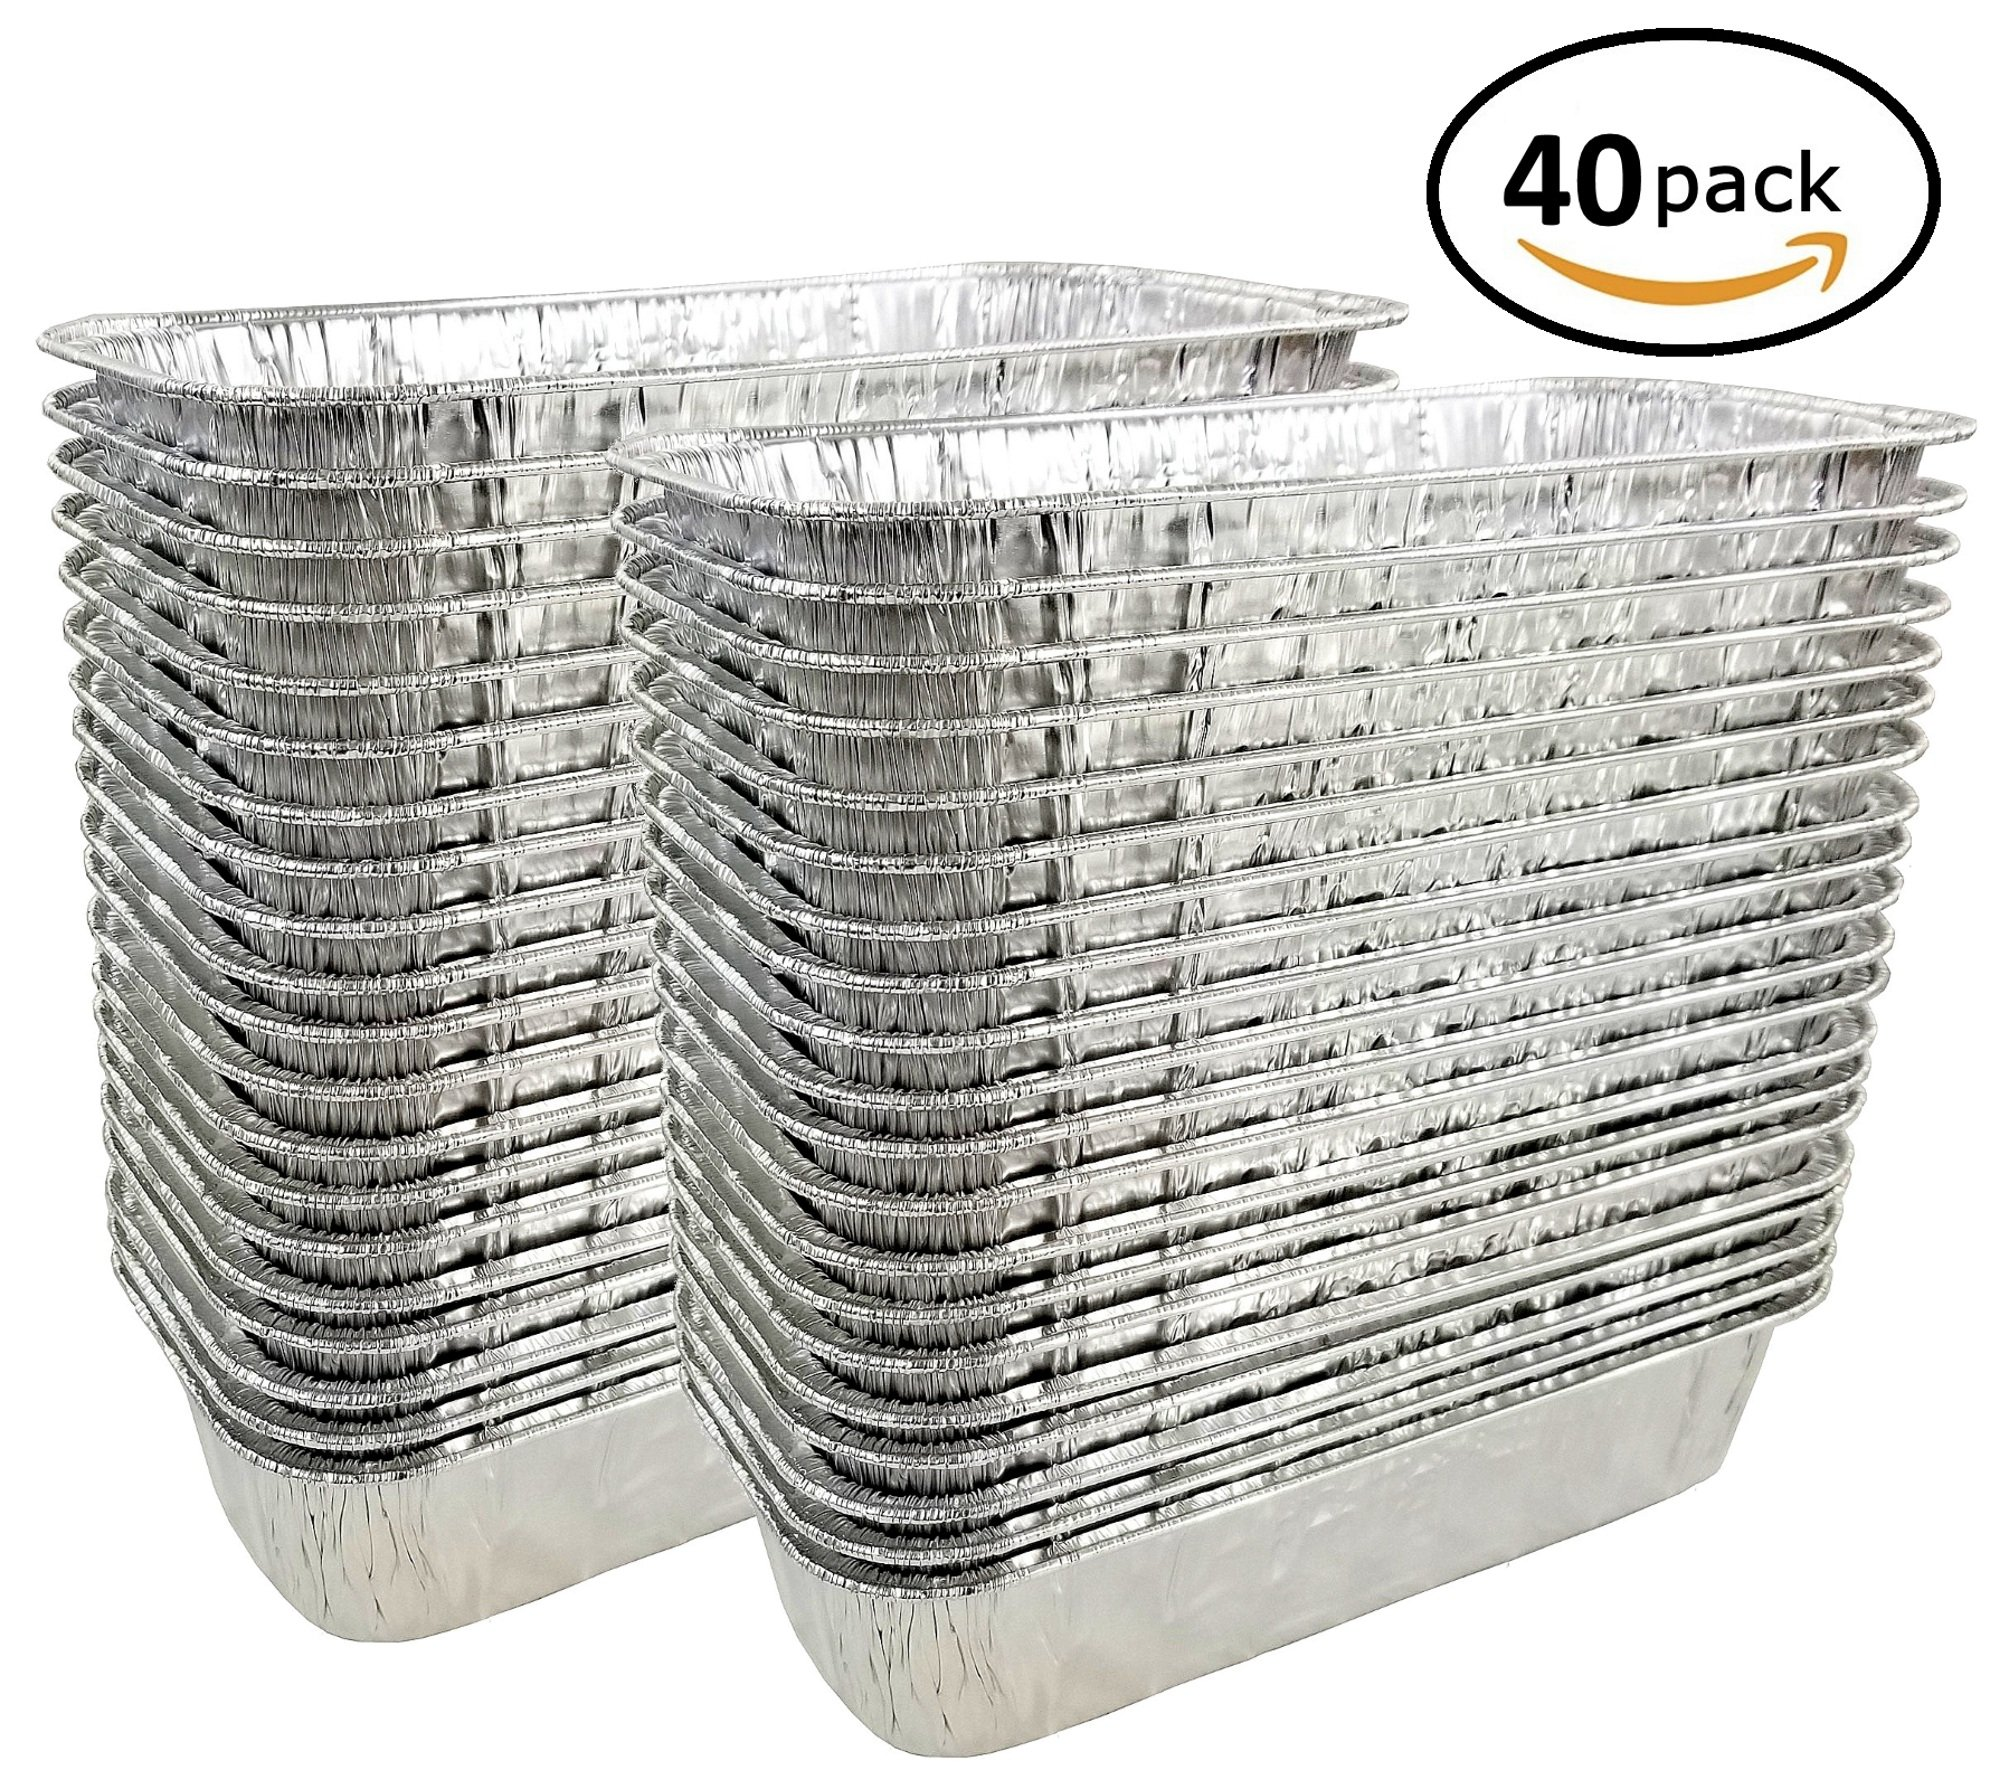 Pactogo 3 lb. Disposable Aluminum Foil Loaf Bread Baking Pan 10.75'' x 4.5'' x 2.31'' - Heavy Duty Made in USA (Pack of 40)